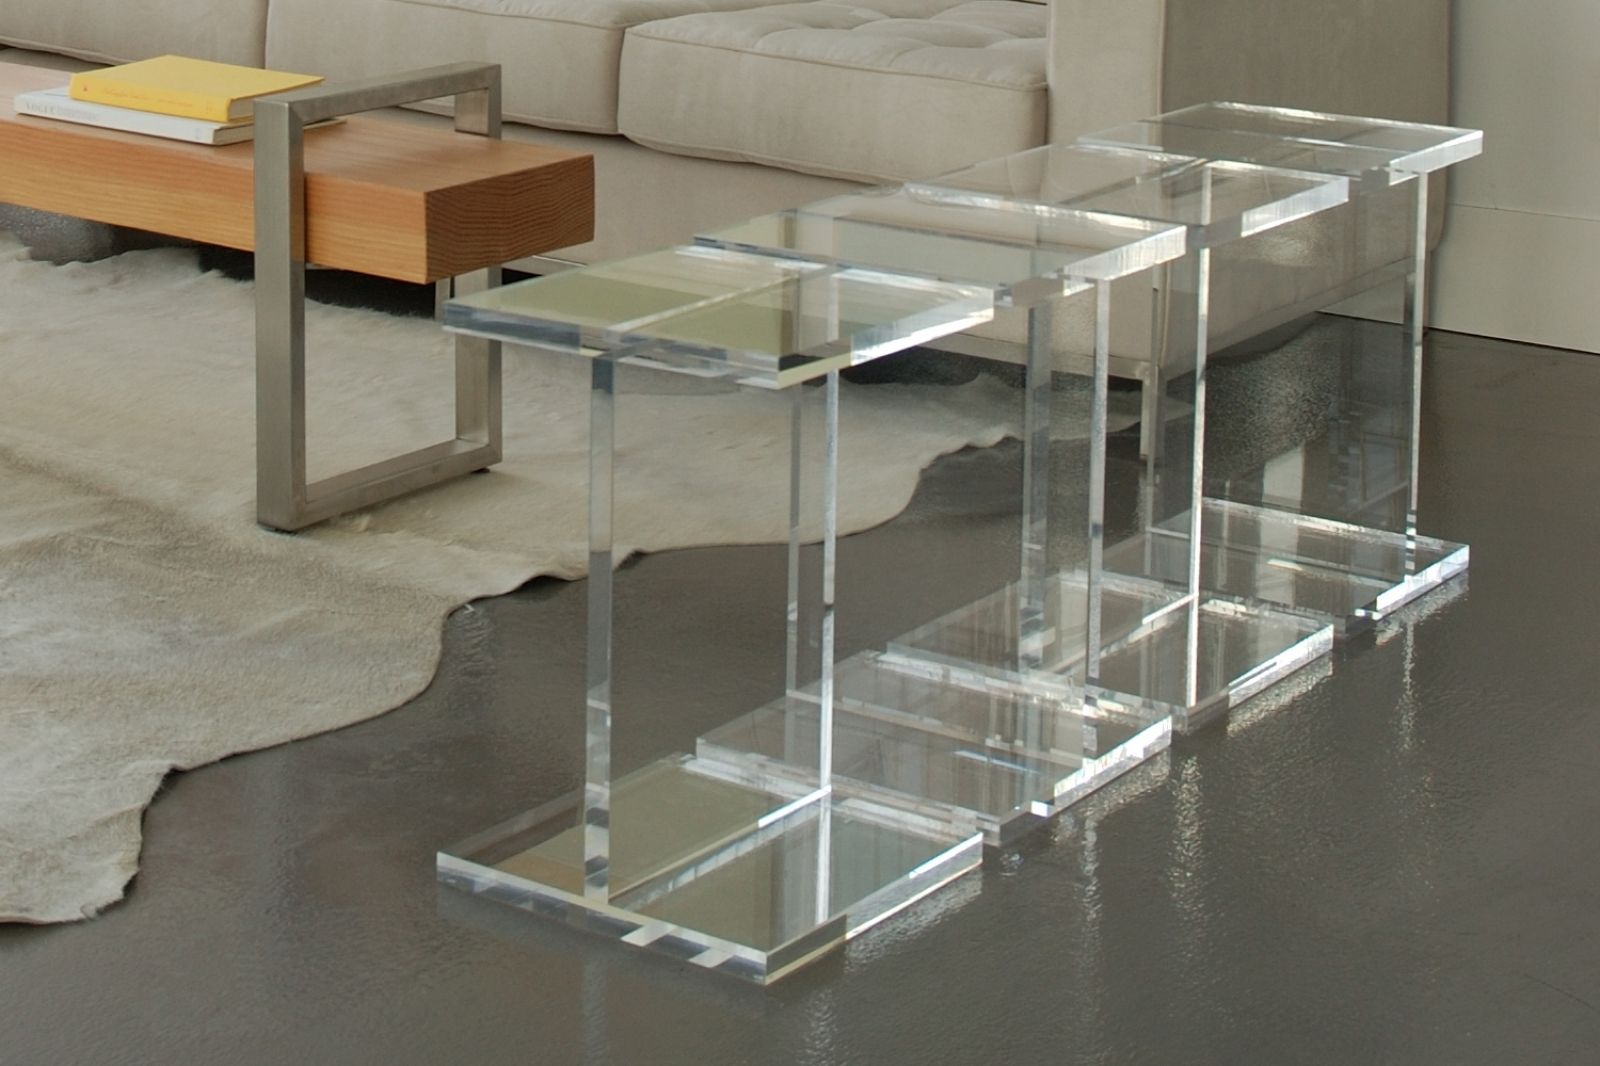 Clear Acrylic Side Table Design Furniture Ideas Regarding Acrylic Side Table Modern Acrylic End Tables De Acrylic Coffee Table Acrylic Side Table Console Table